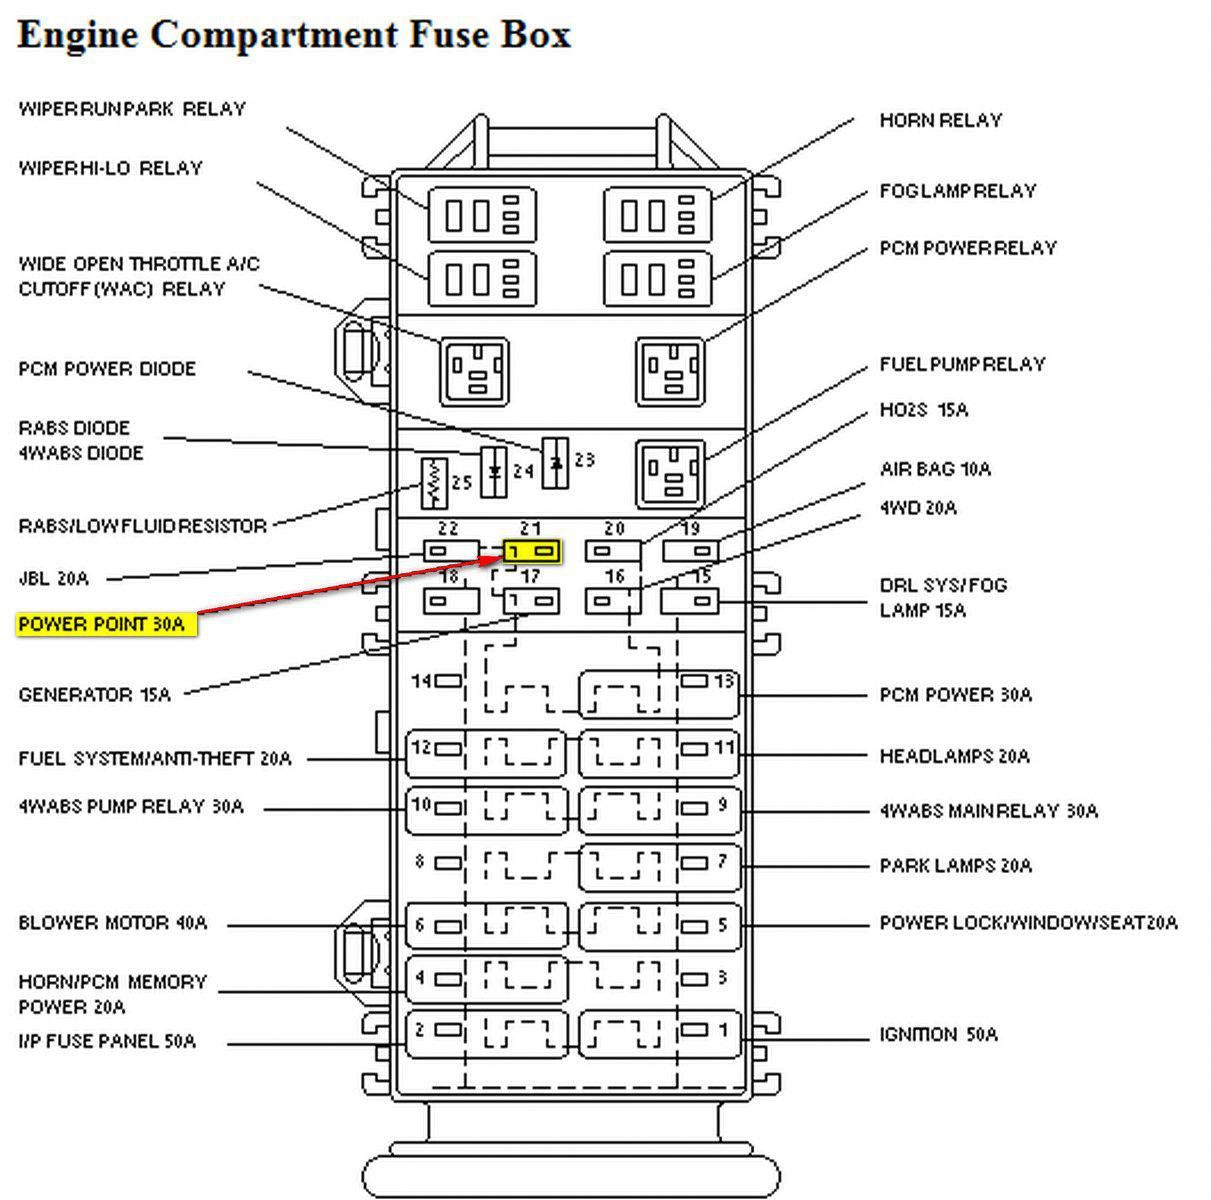 1997 ford ranger fuse box diagram truck part diagrams #80x30interiordoor |  audio de automóviles, ford explorer, coches y motocicletas  pinterest